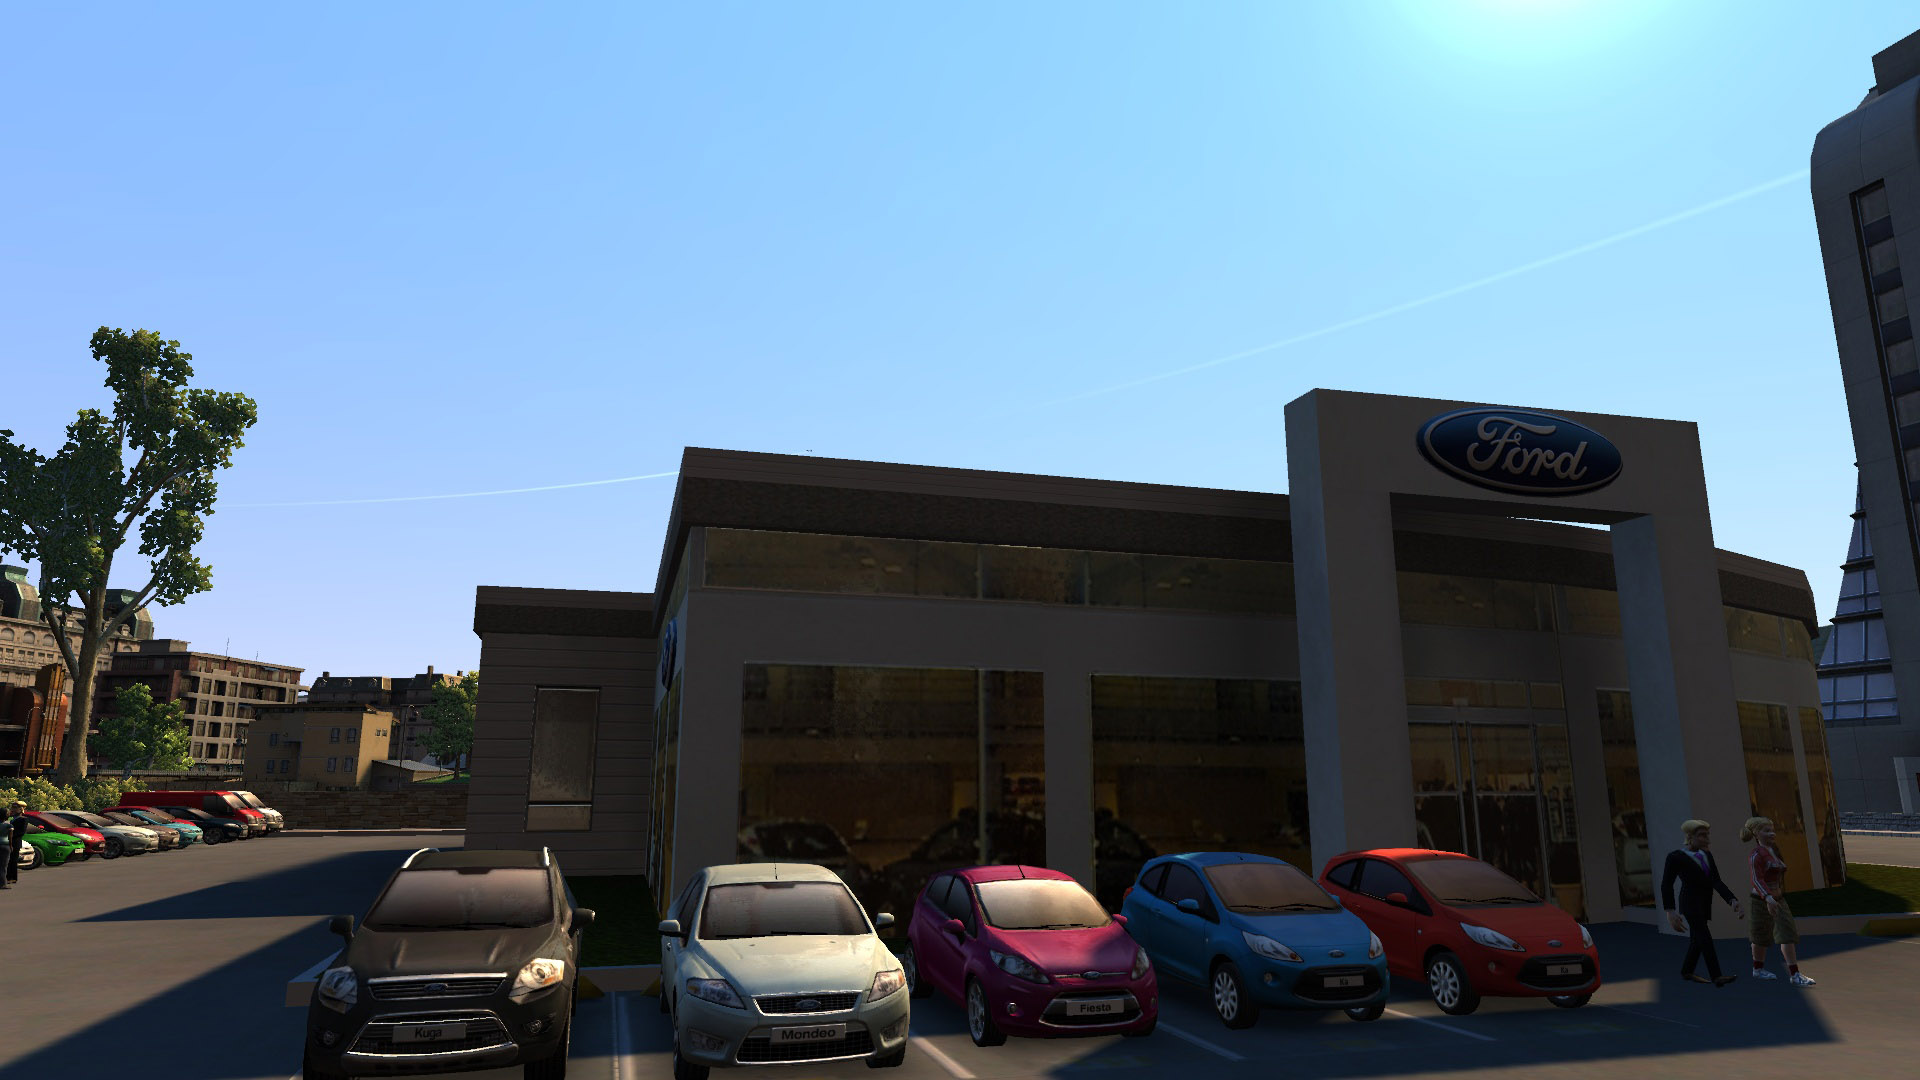 ford dealership cities xl wiki. Black Bedroom Furniture Sets. Home Design Ideas